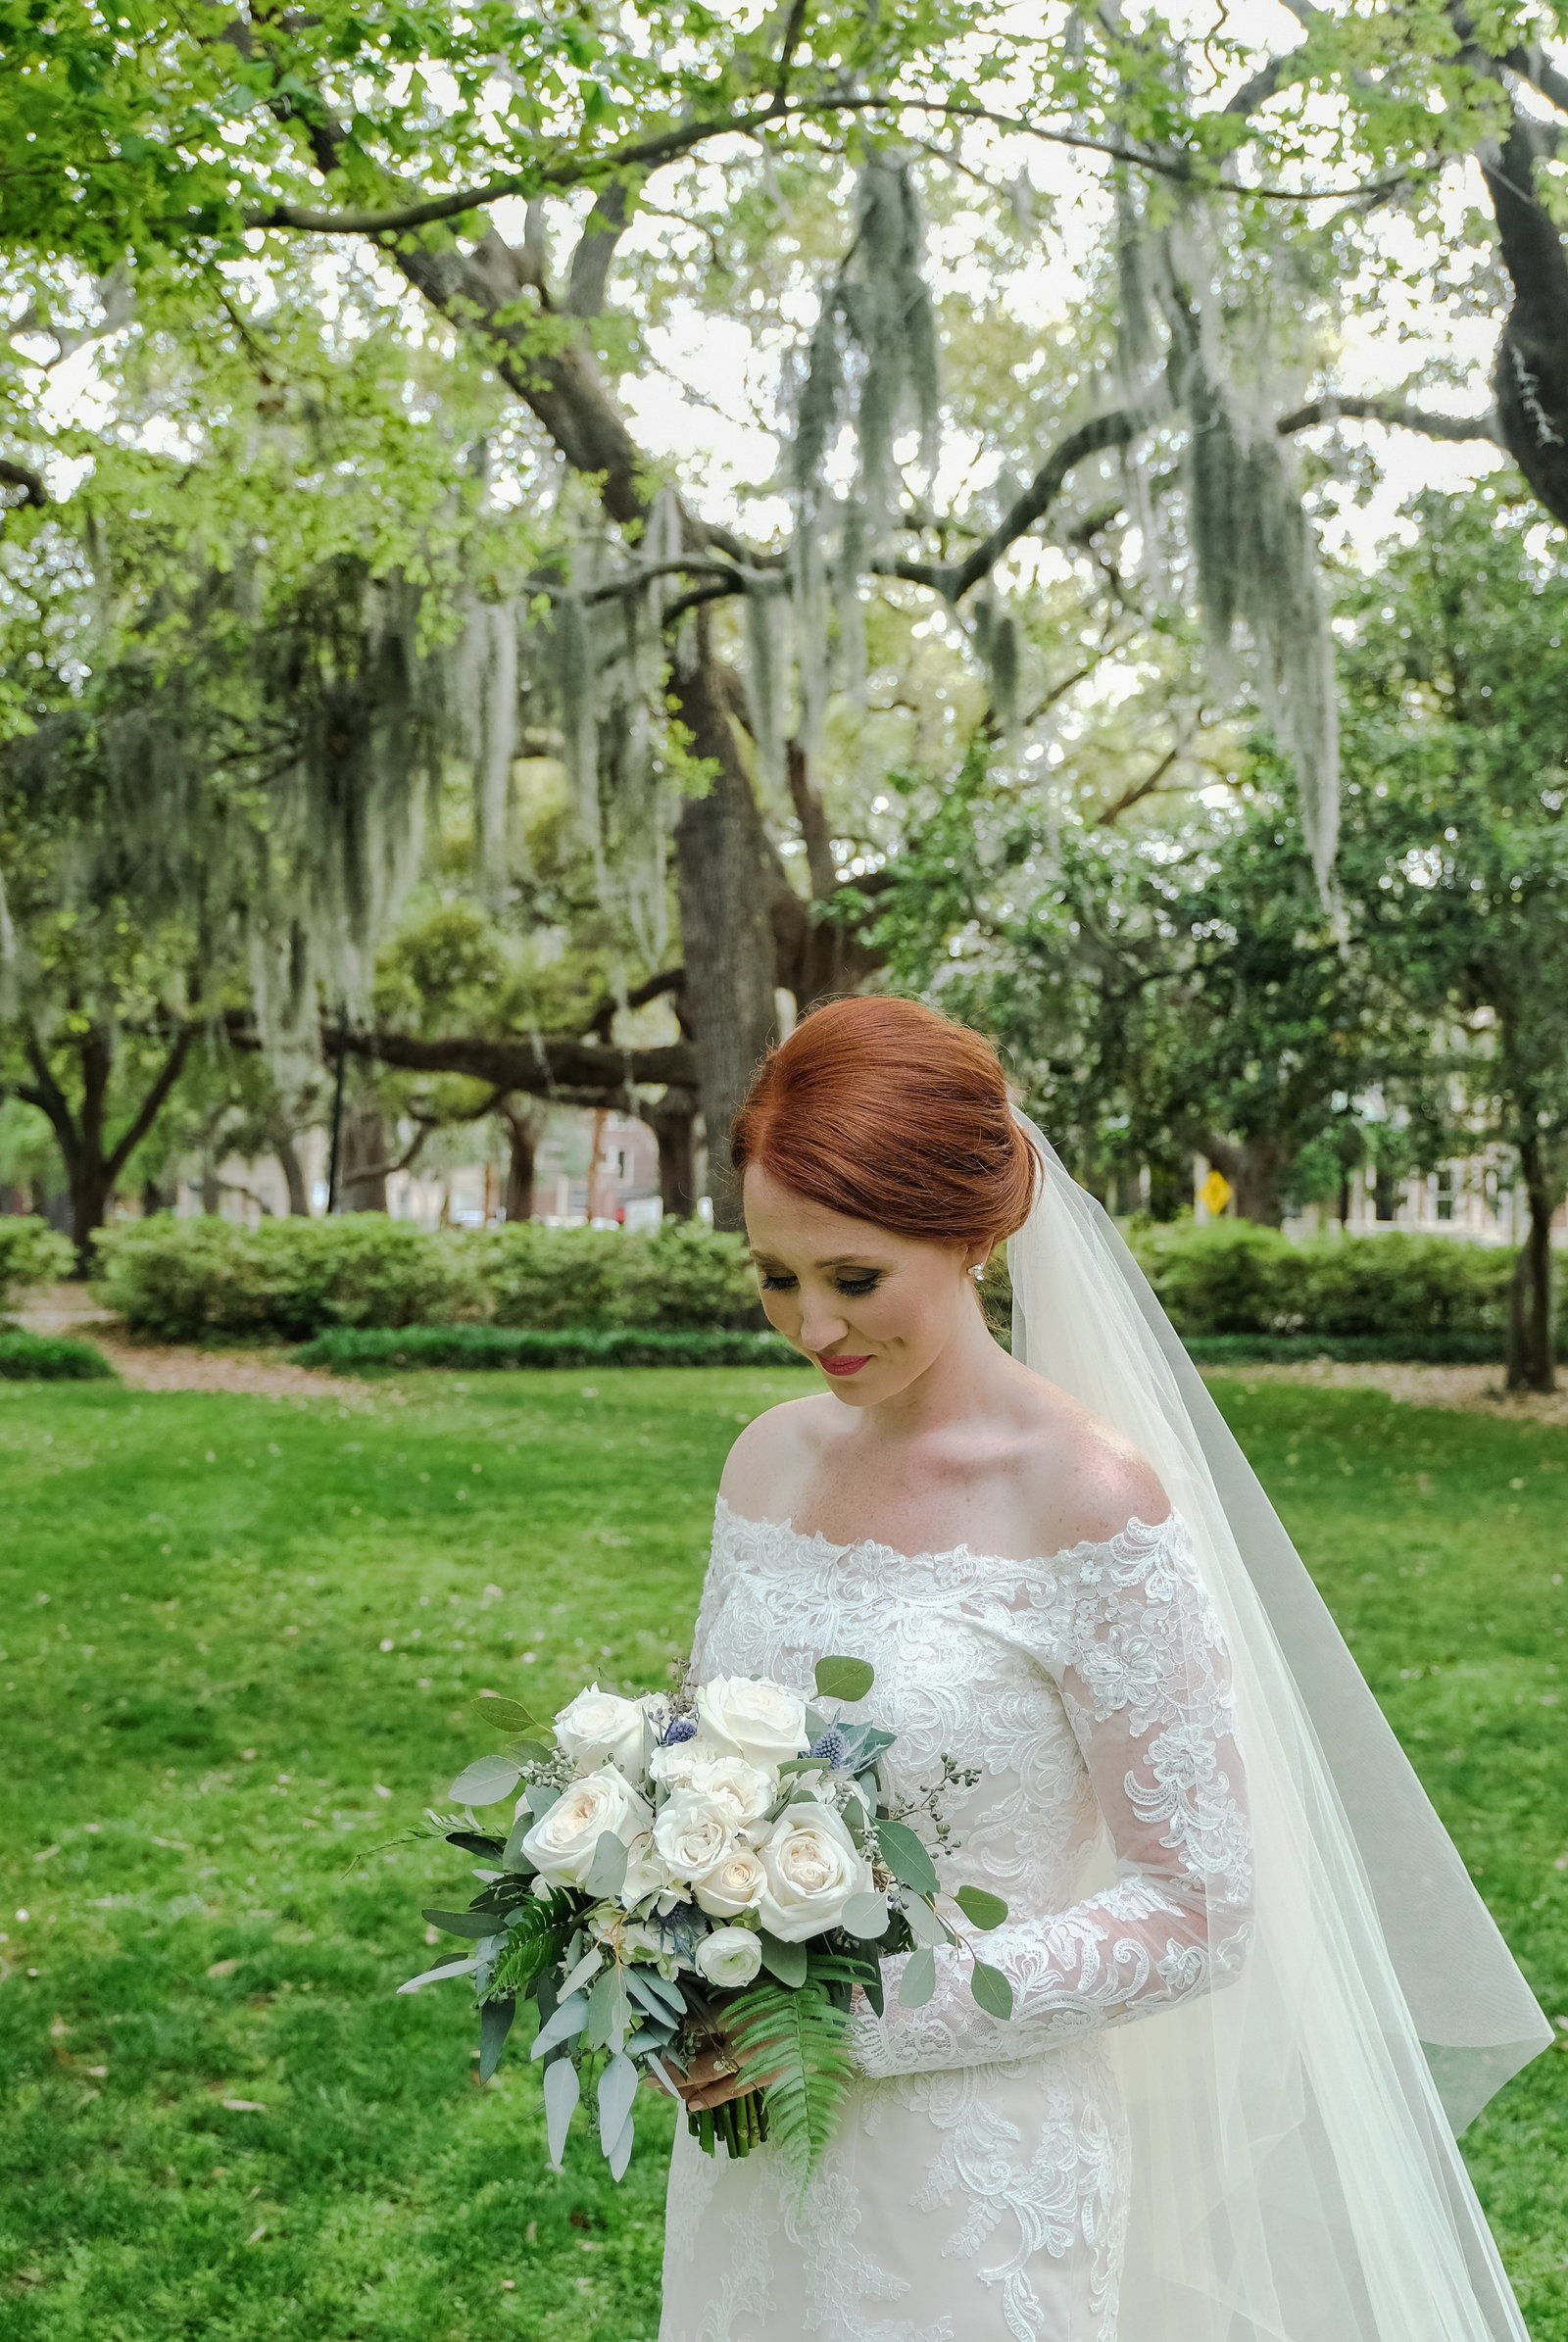 Savannah Weddings, Bobbi Brinkman Photography, Savannah Wedding Photographer